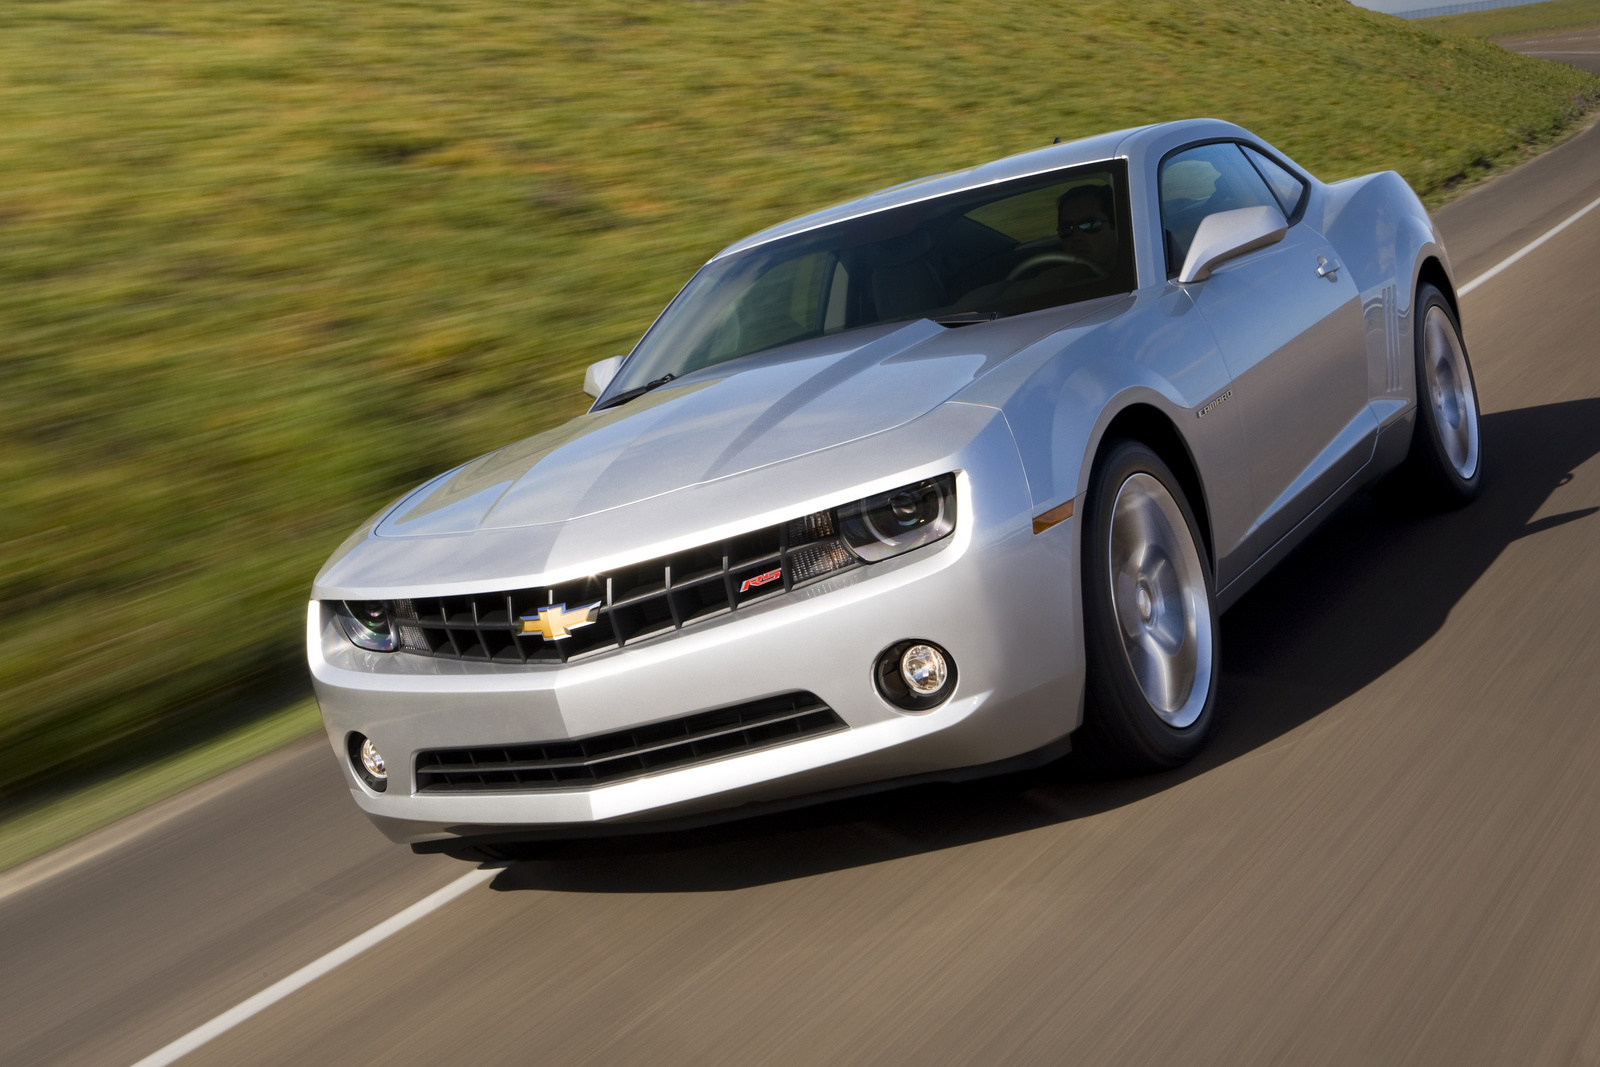 2013 Chevrolet Camaro - Review - CarGurus